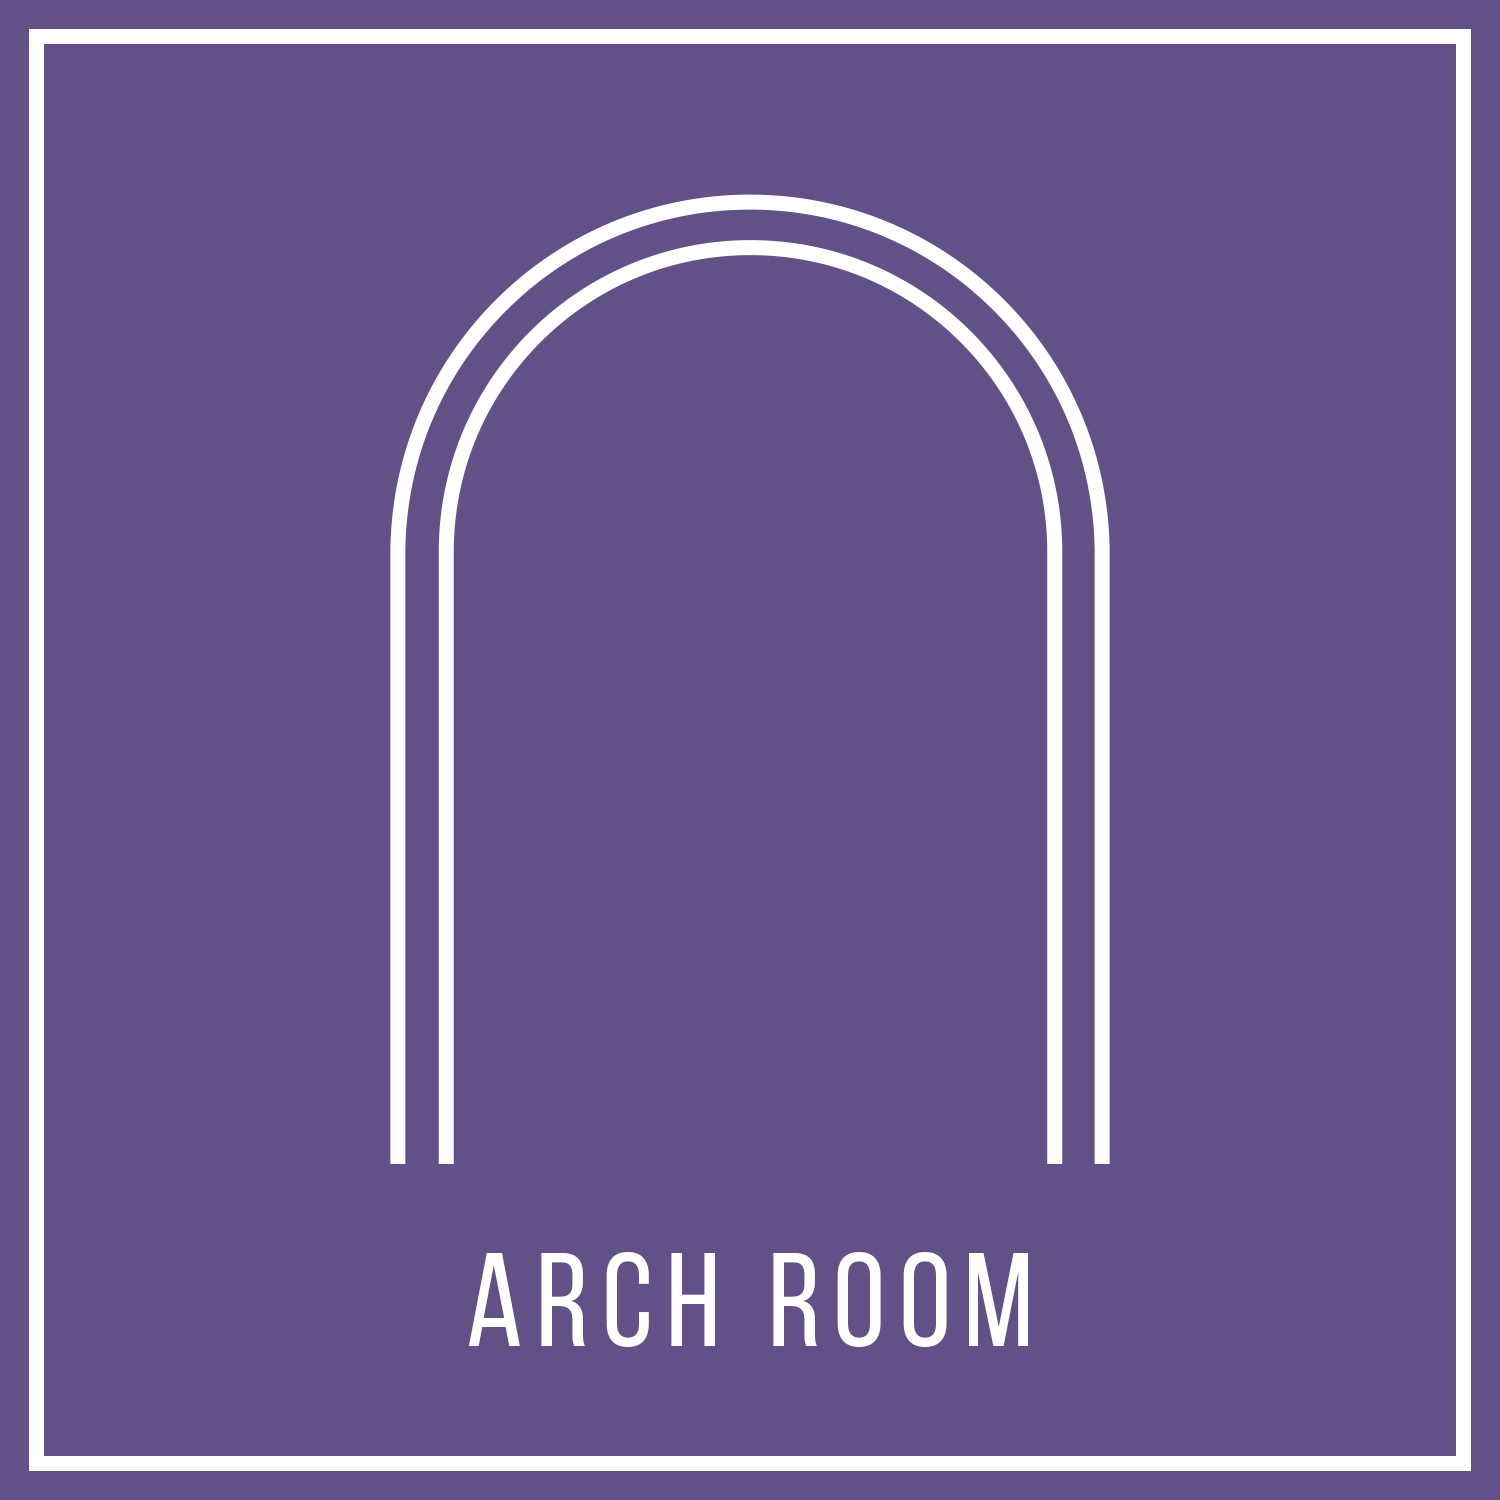 aya-kapadokya-room-features-chapel-suite-square-arch-room